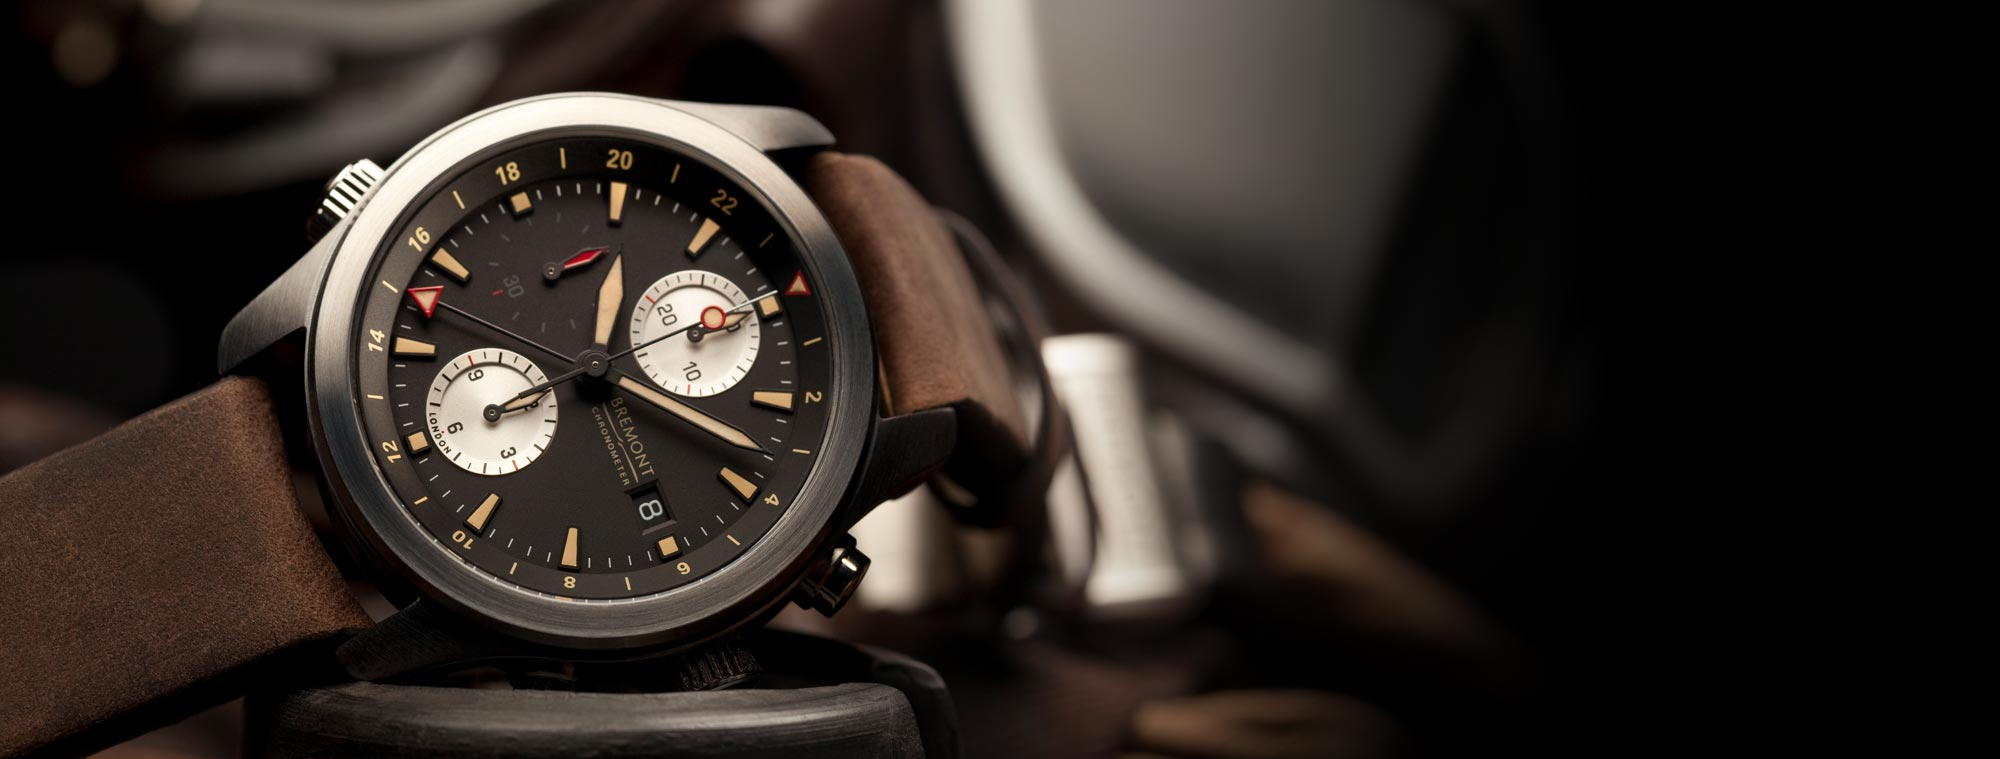 cb0ad6924d6 British Luxury Watches Bremont Chronometers — Bremont Watch Company